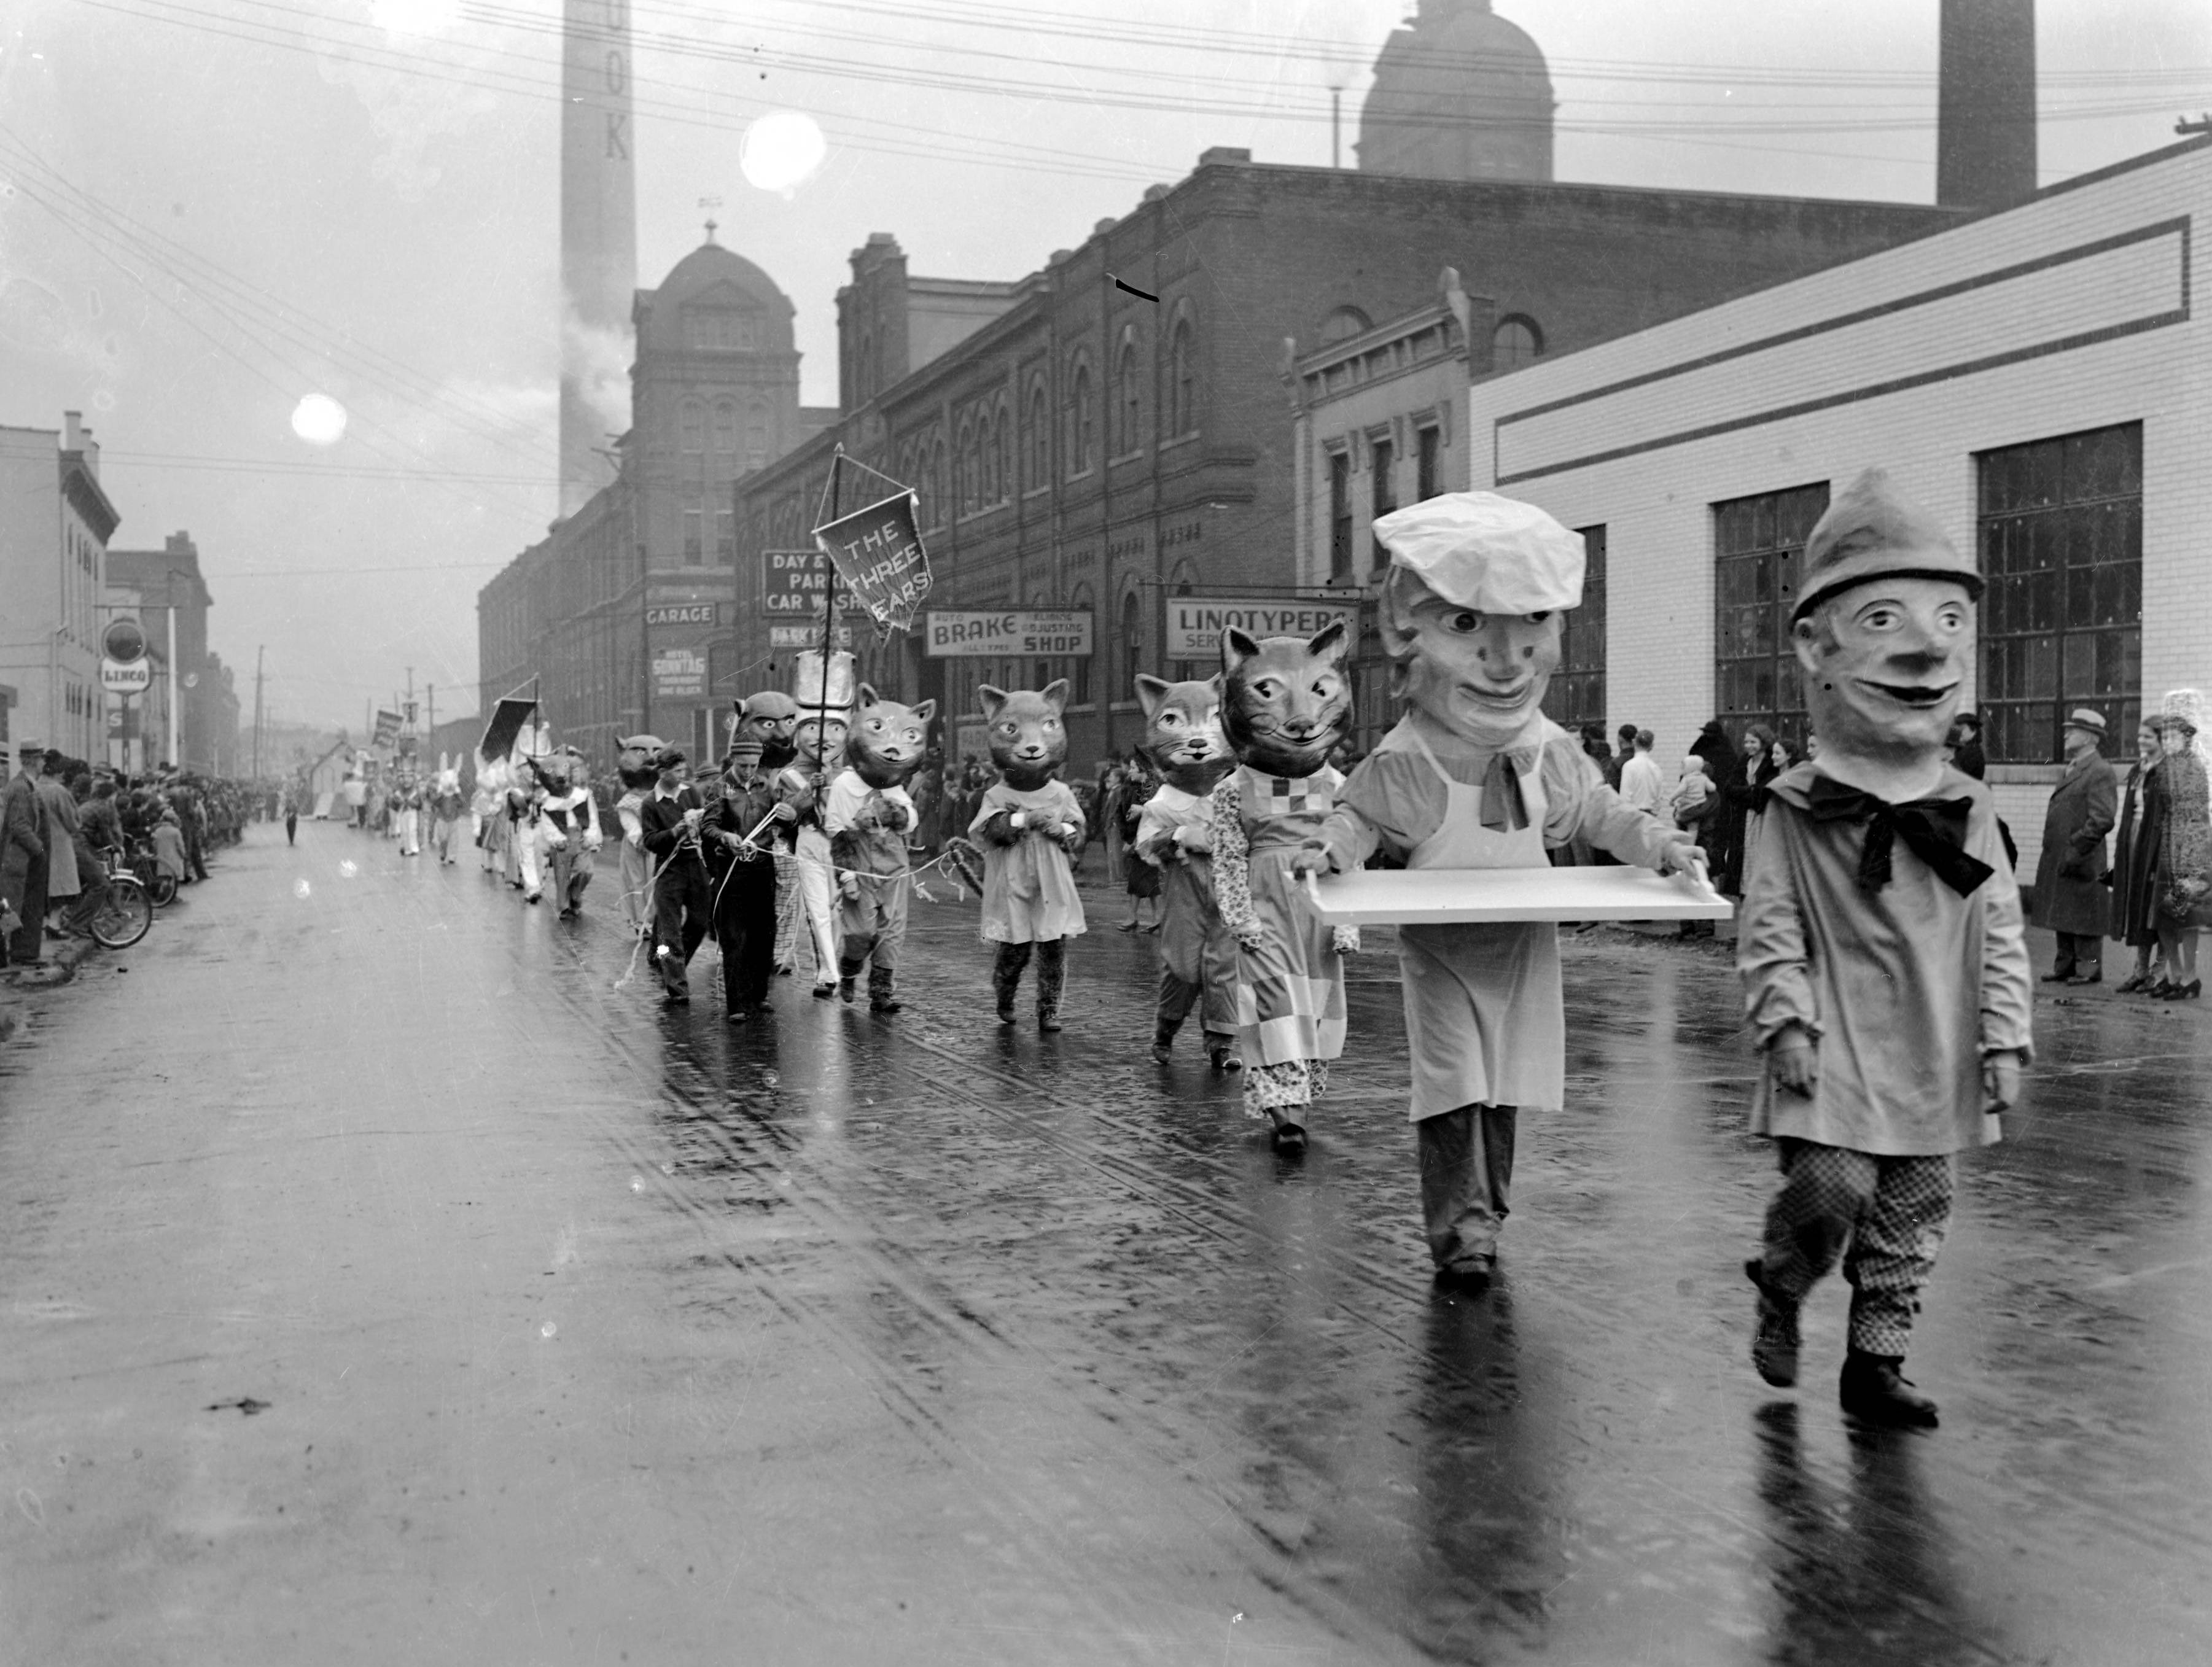 WPA Christmas Parade floats with various paper Mache head figures--a baker, cats, the 3 bears, etc in 1939.